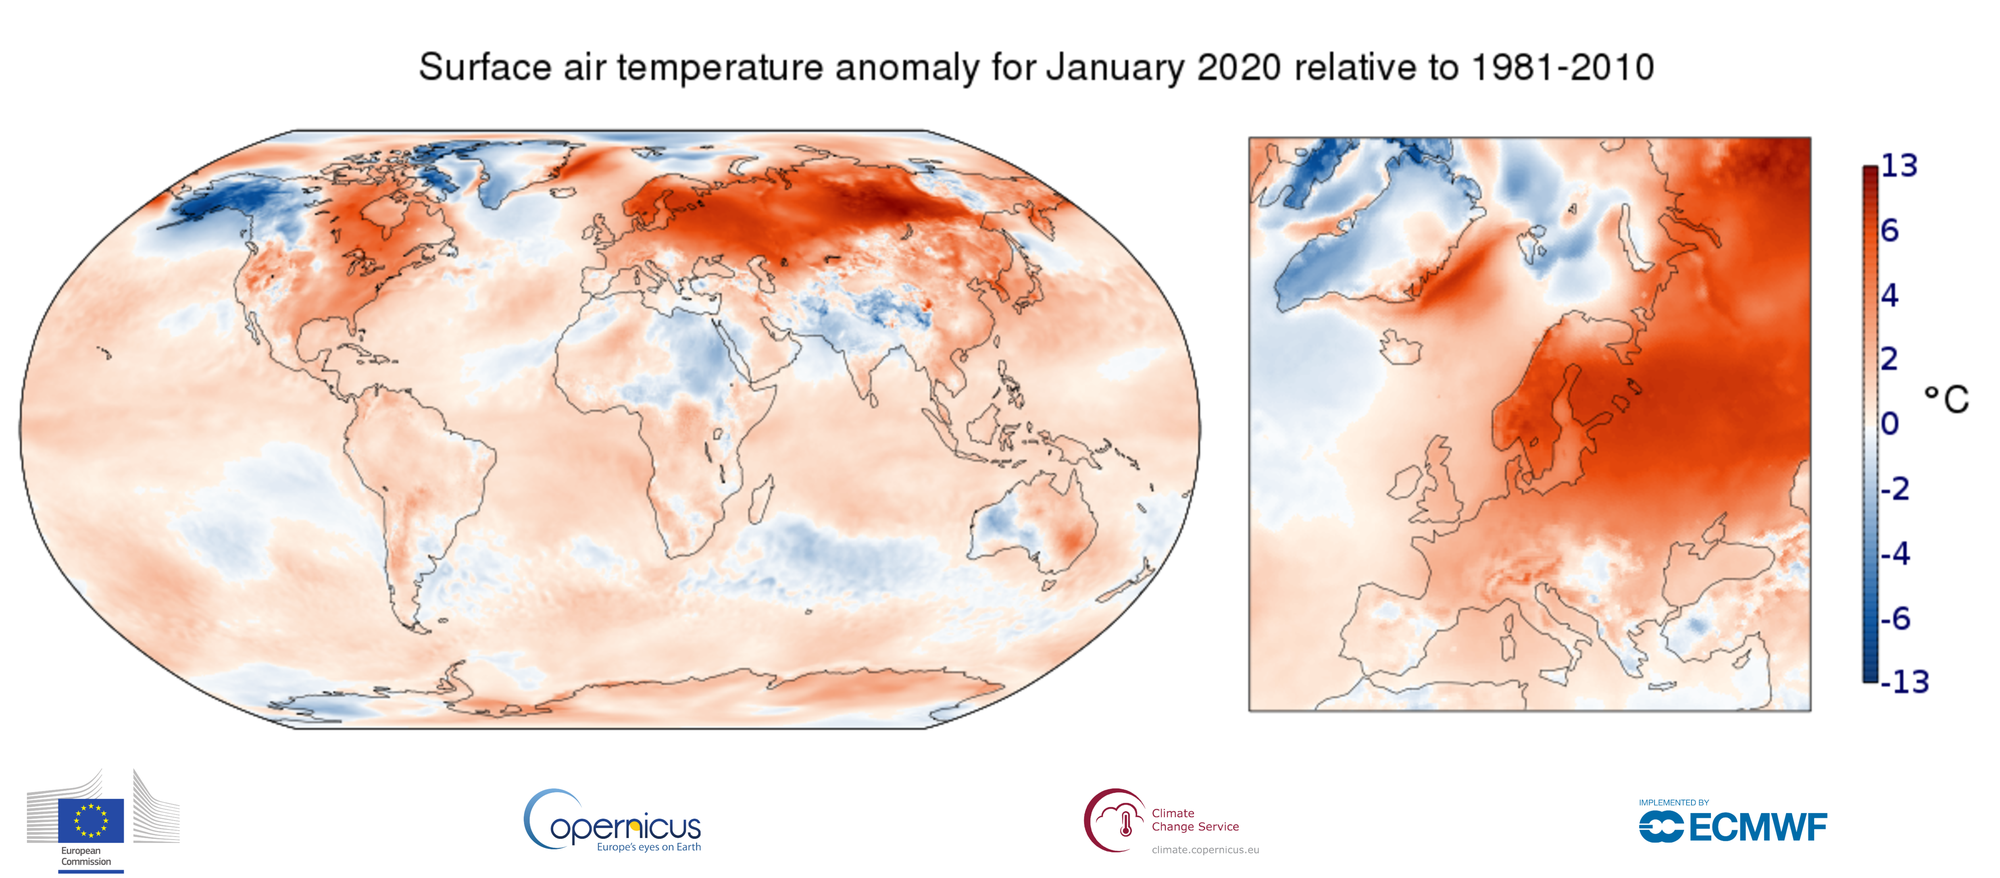 map_1month_anomaly_Global_ea_2t_202001_v02.png